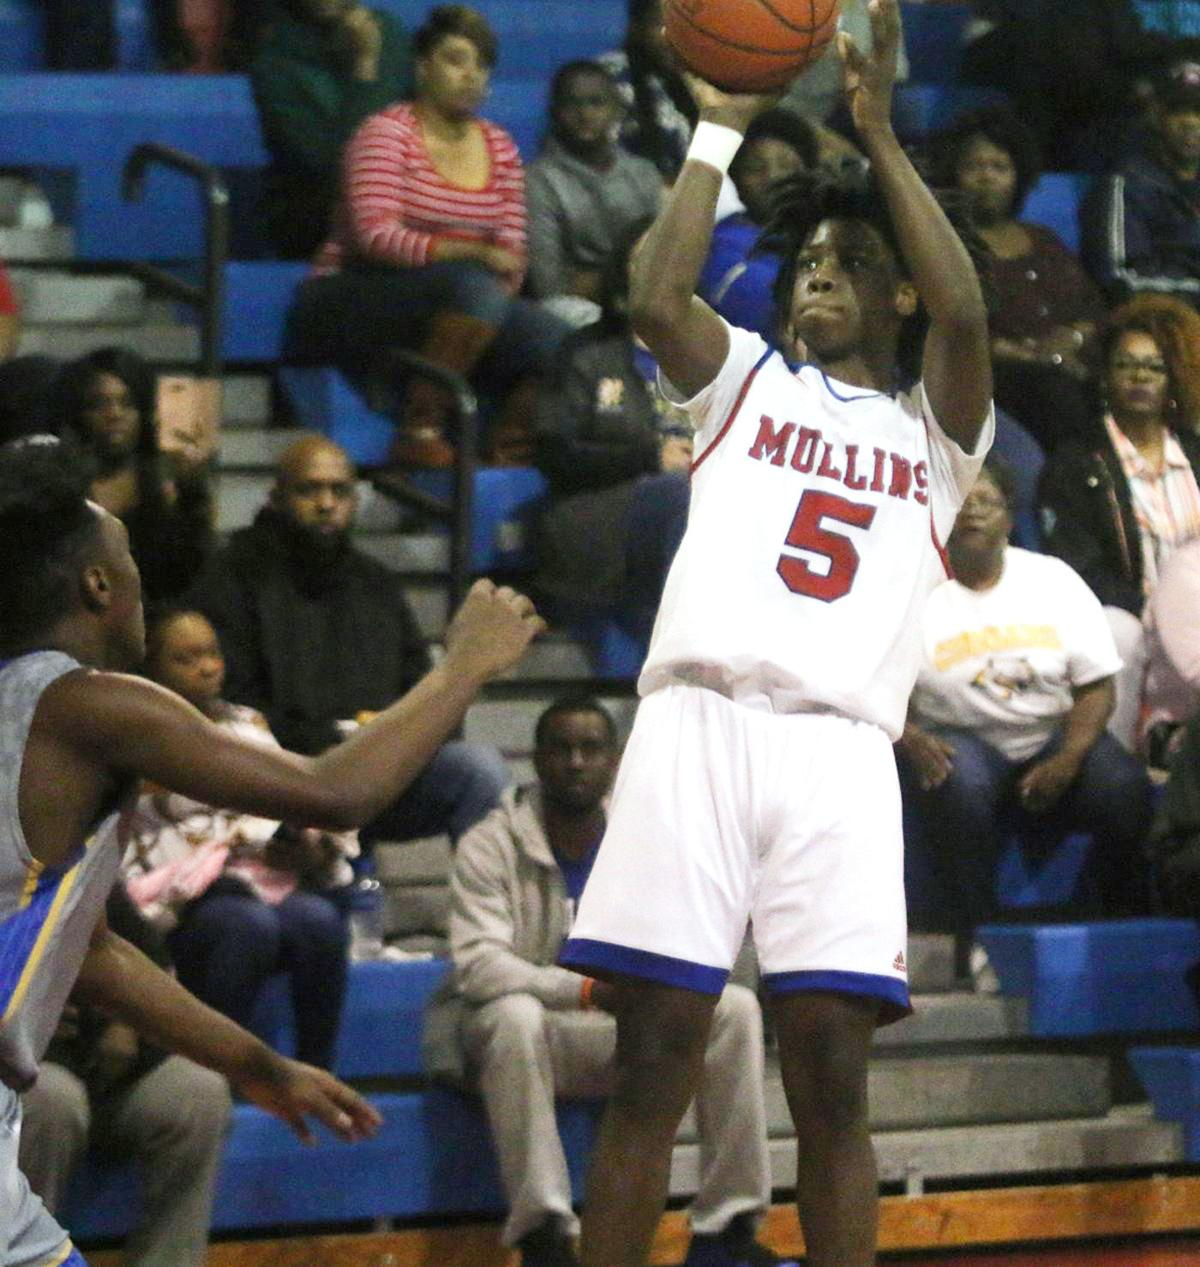 Mullins' Gilchrist named SCBCA Preseason Top 2A player